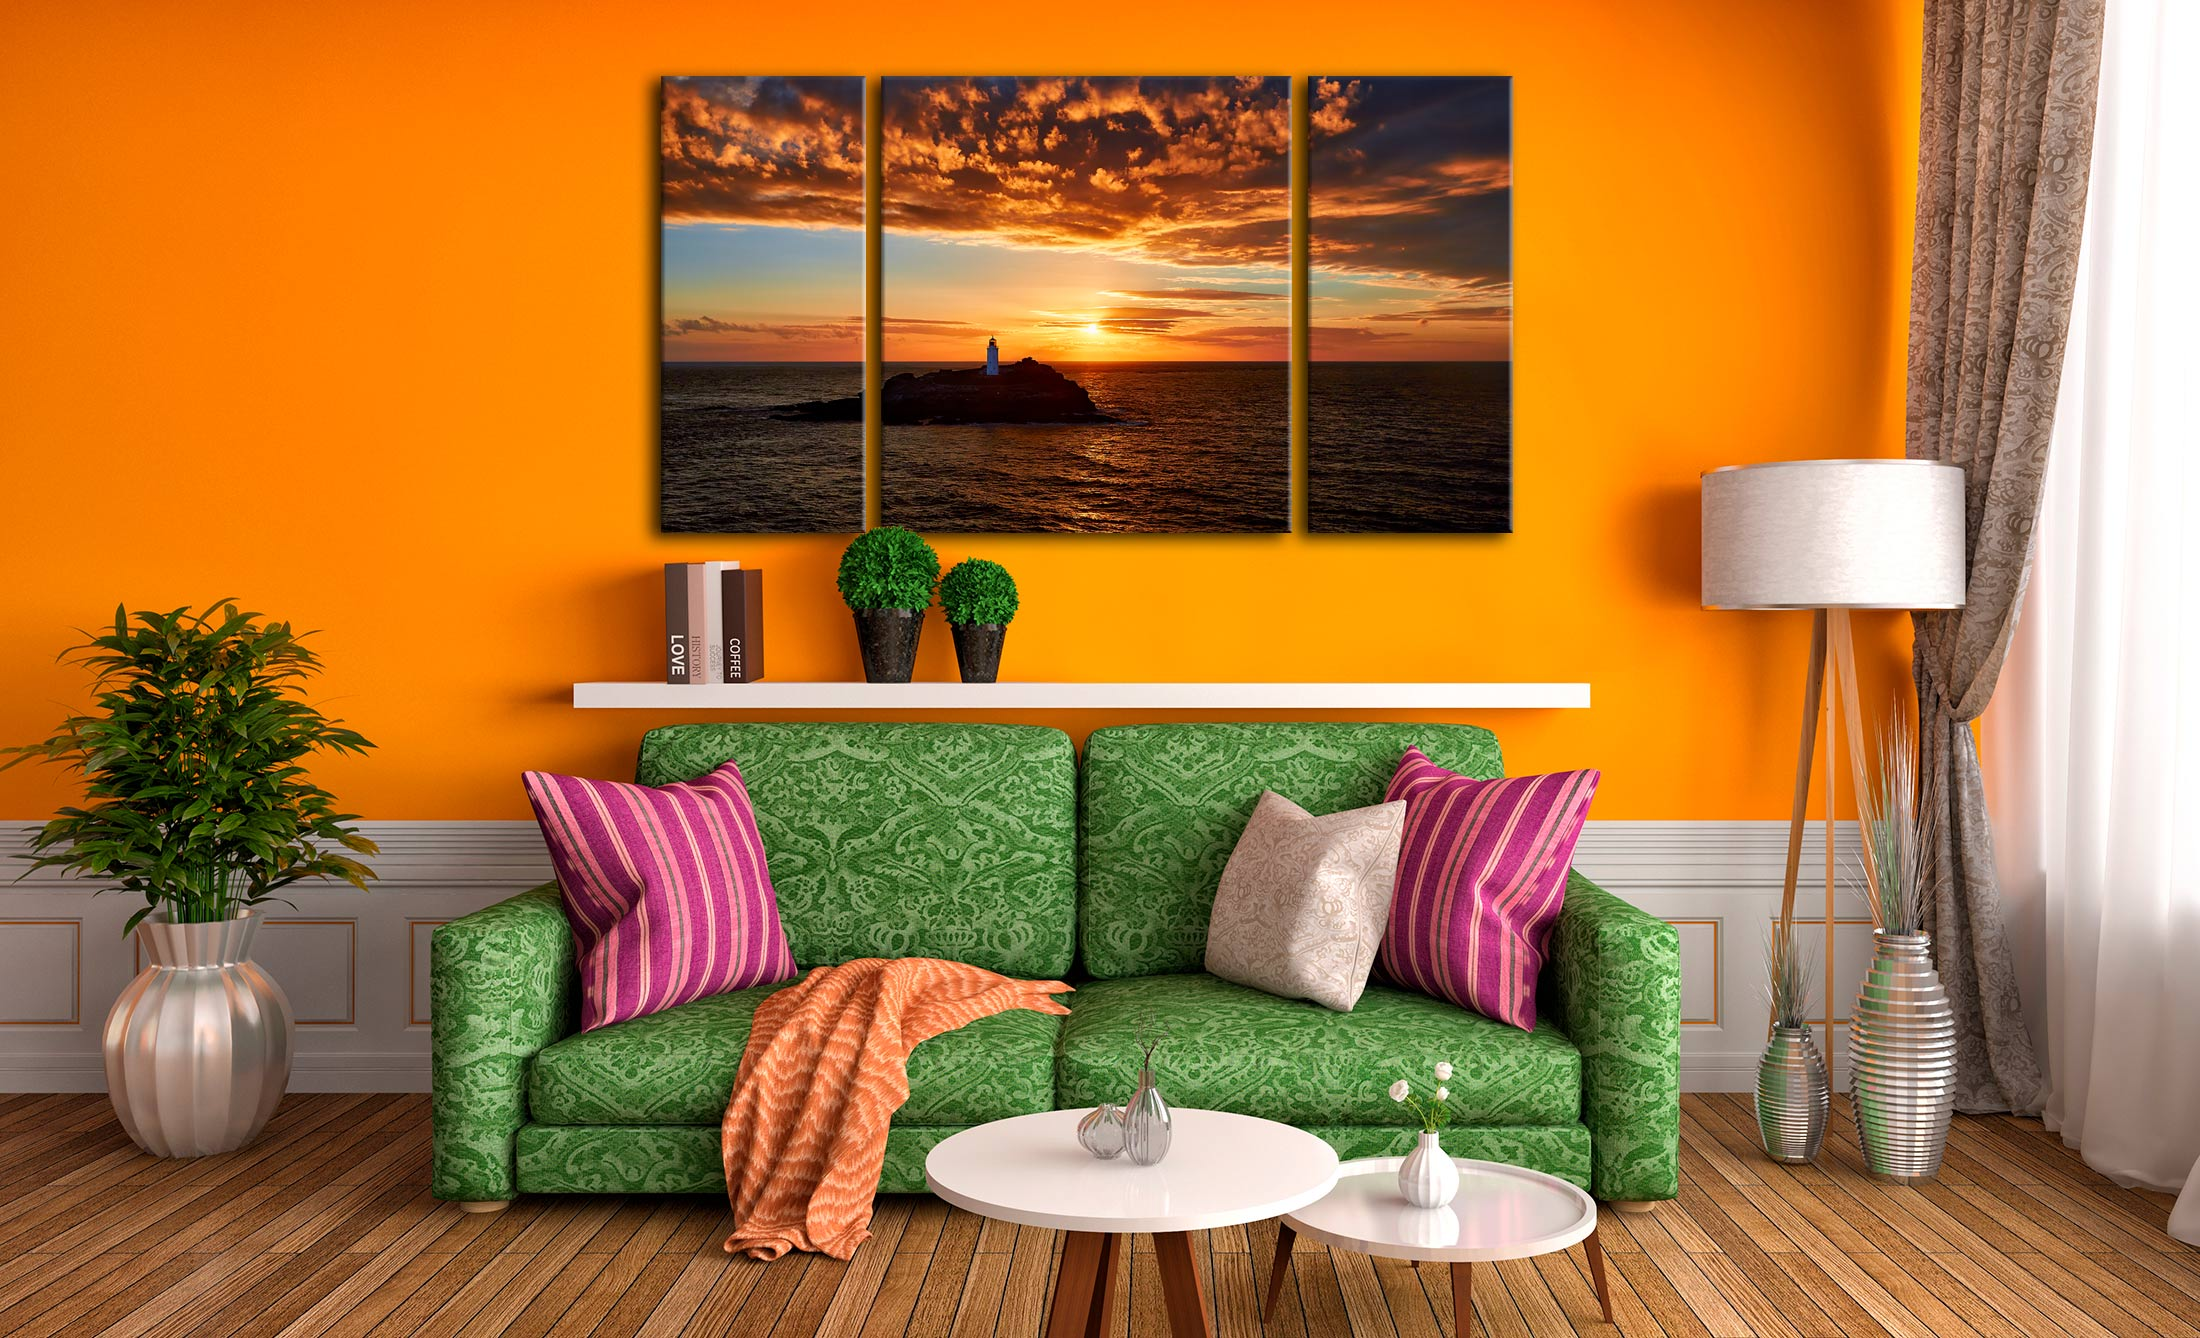 Sunset Over Godrevy Lighthouse - 3 Panel Canvas on Wall